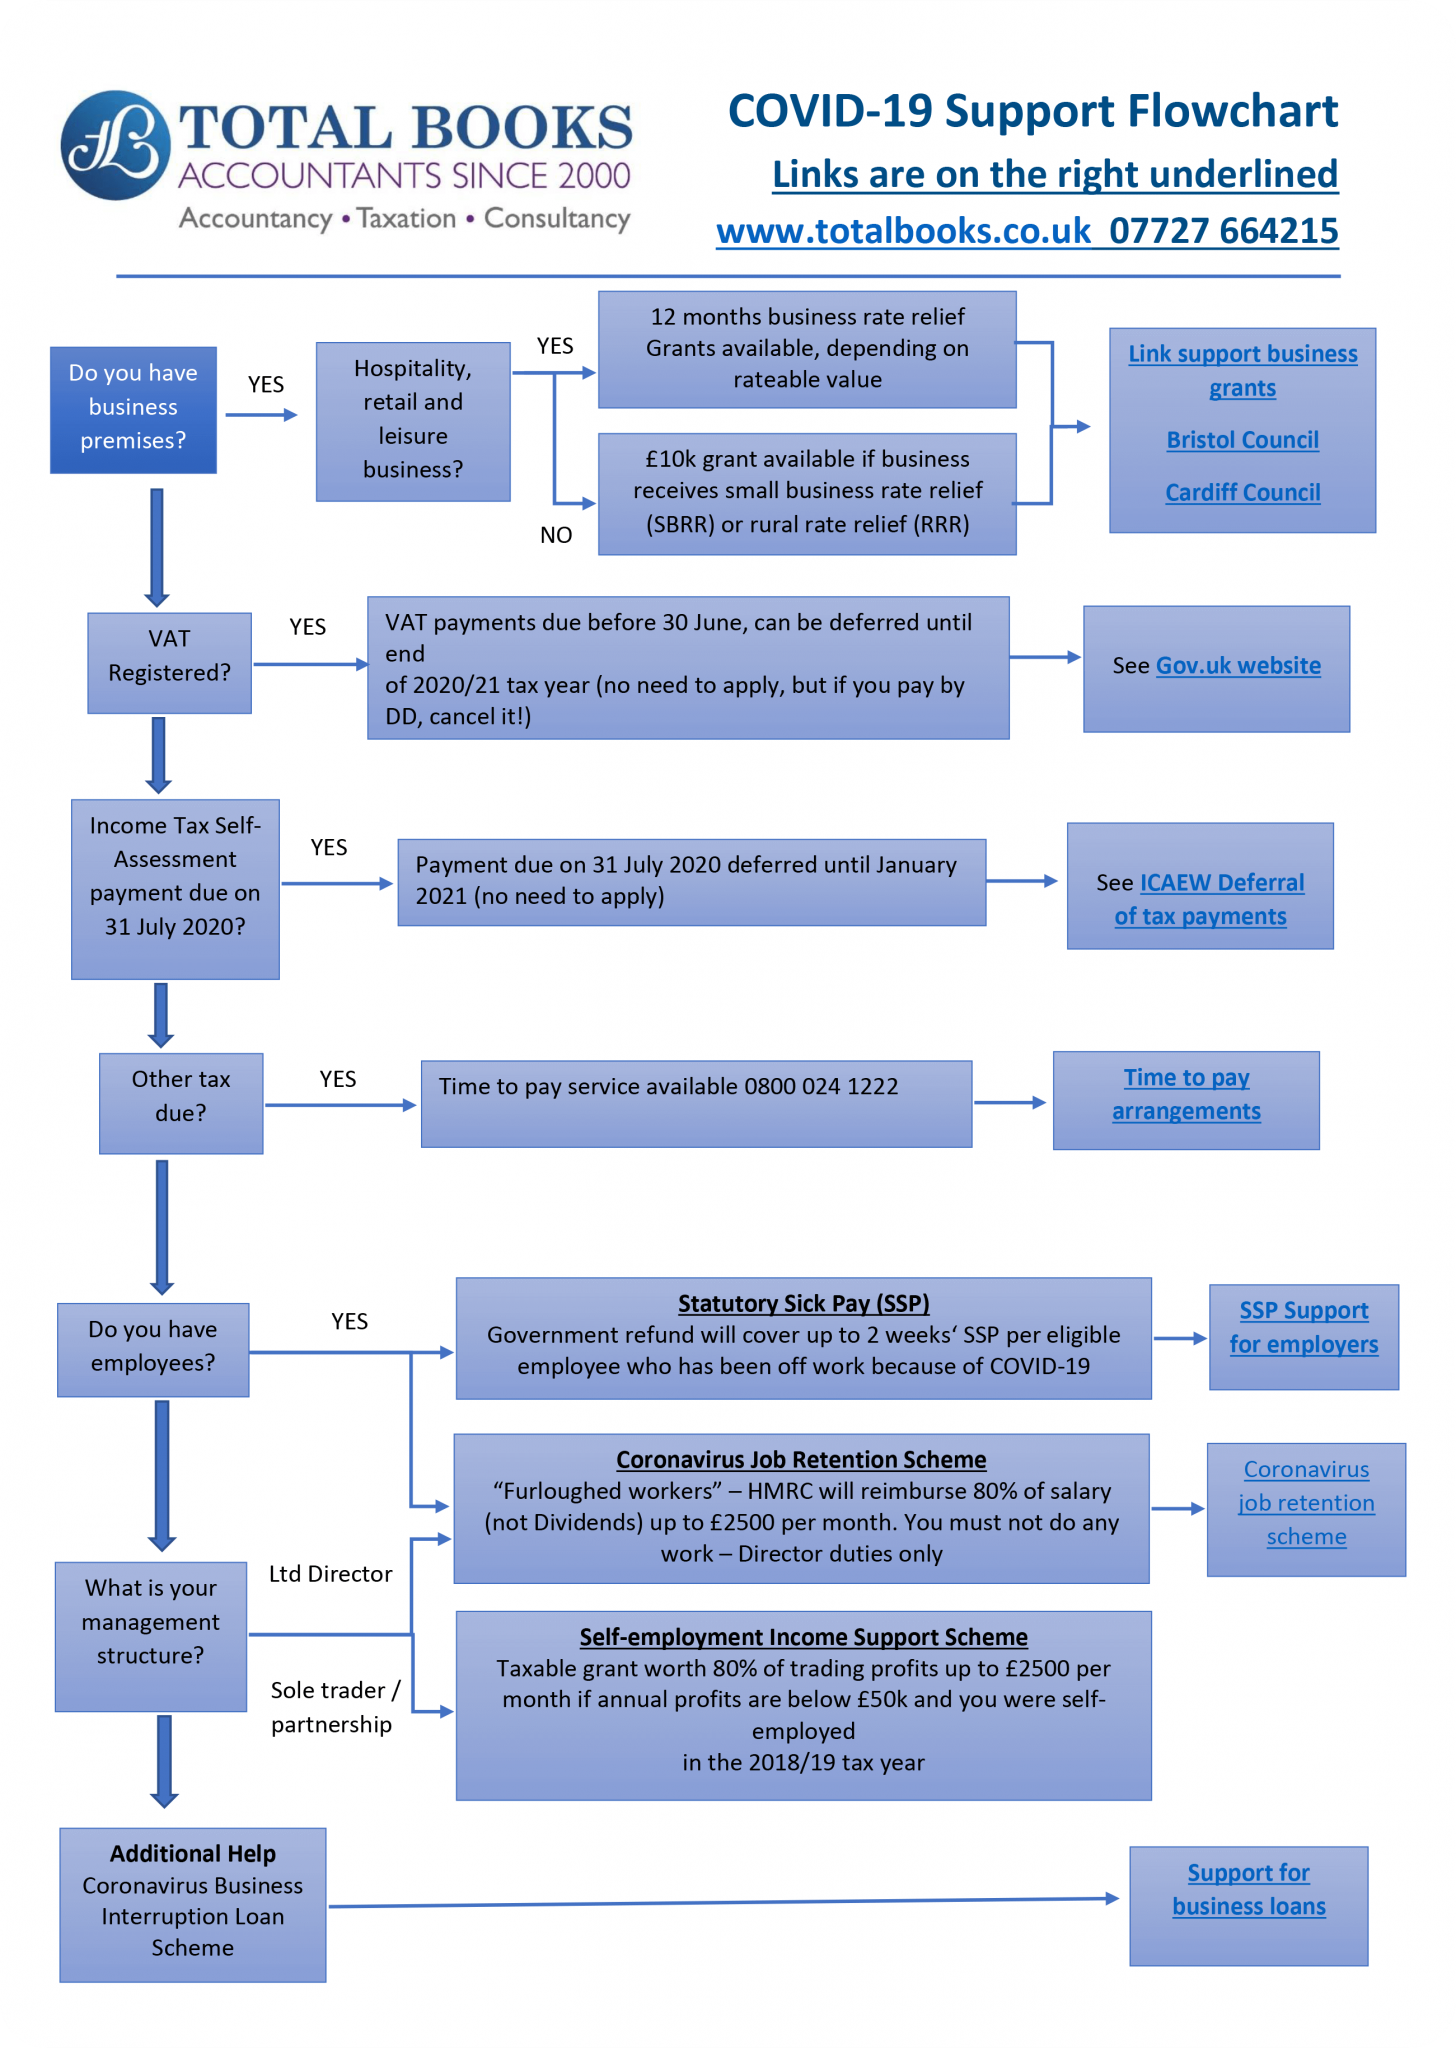 Total Books COVID-19 Support Flowchart